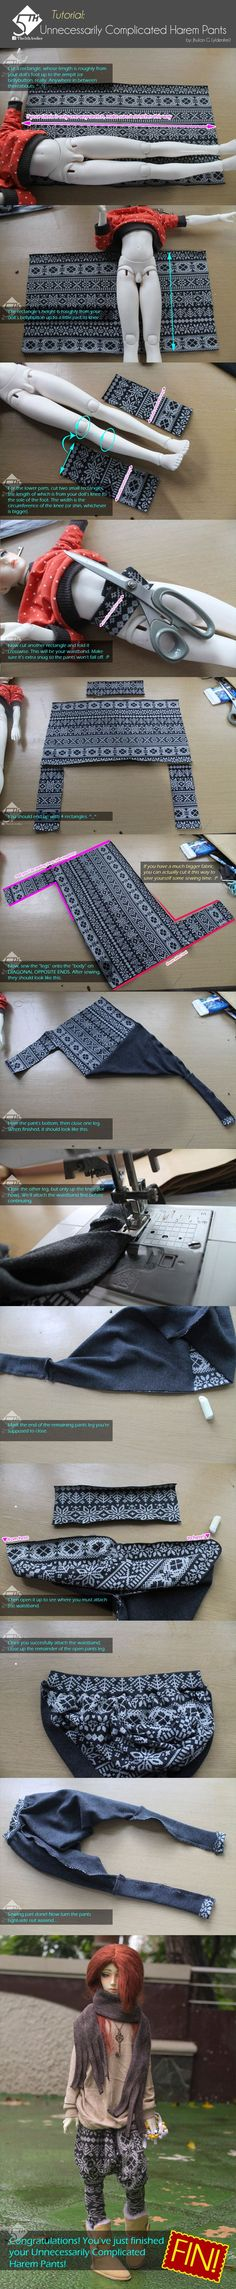 Haha! I don't know what possessed me to sew tonight, or even document it. But I did anyway, so have a quick and dirty tutorial for a no-pattern dolman-sleeved cardigan (a.k.a. I just exp...